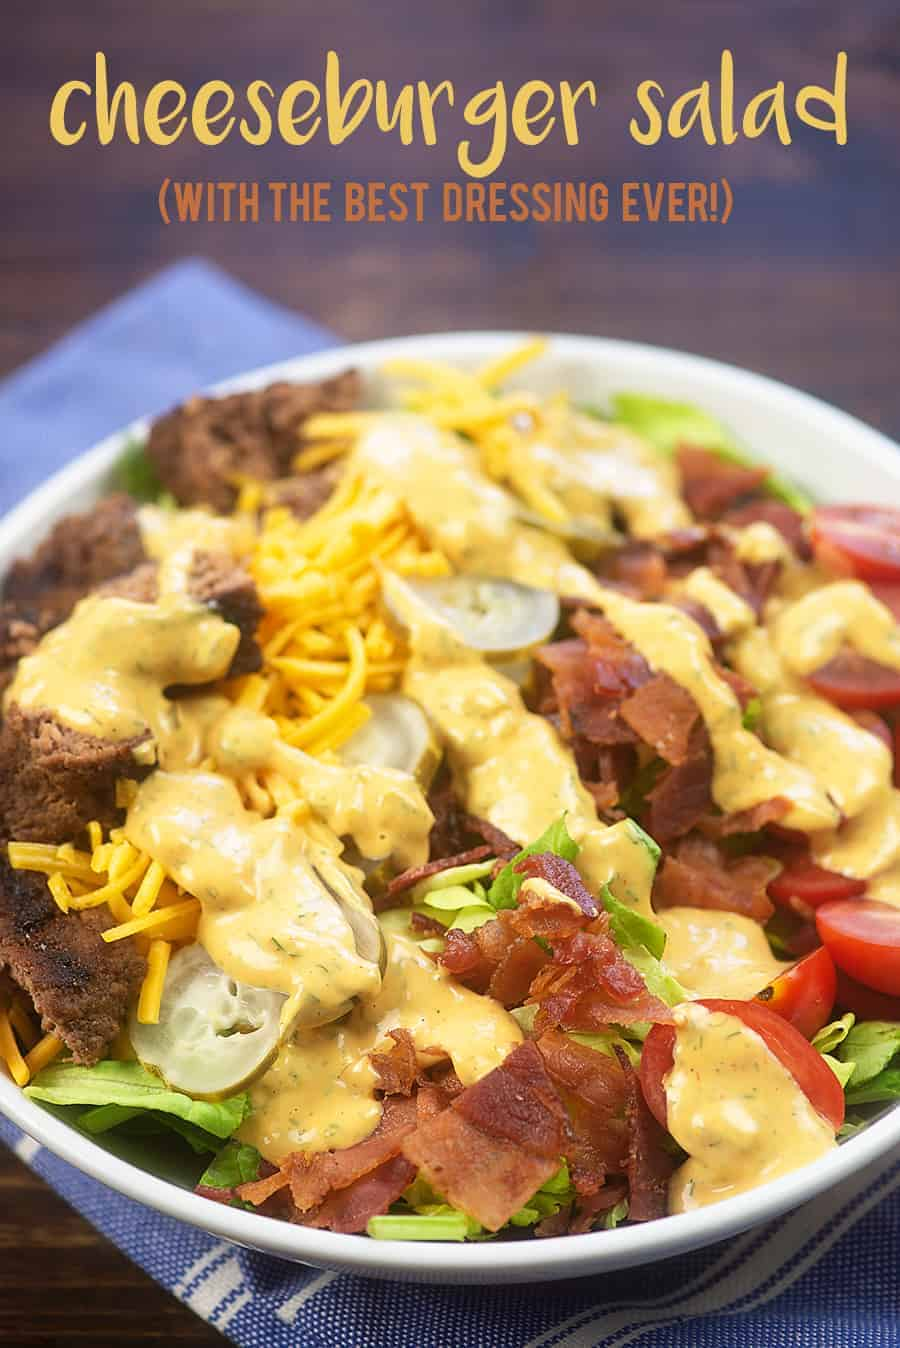 Cheeseburger Salad (with the BEST dressing EVER!)   That Low